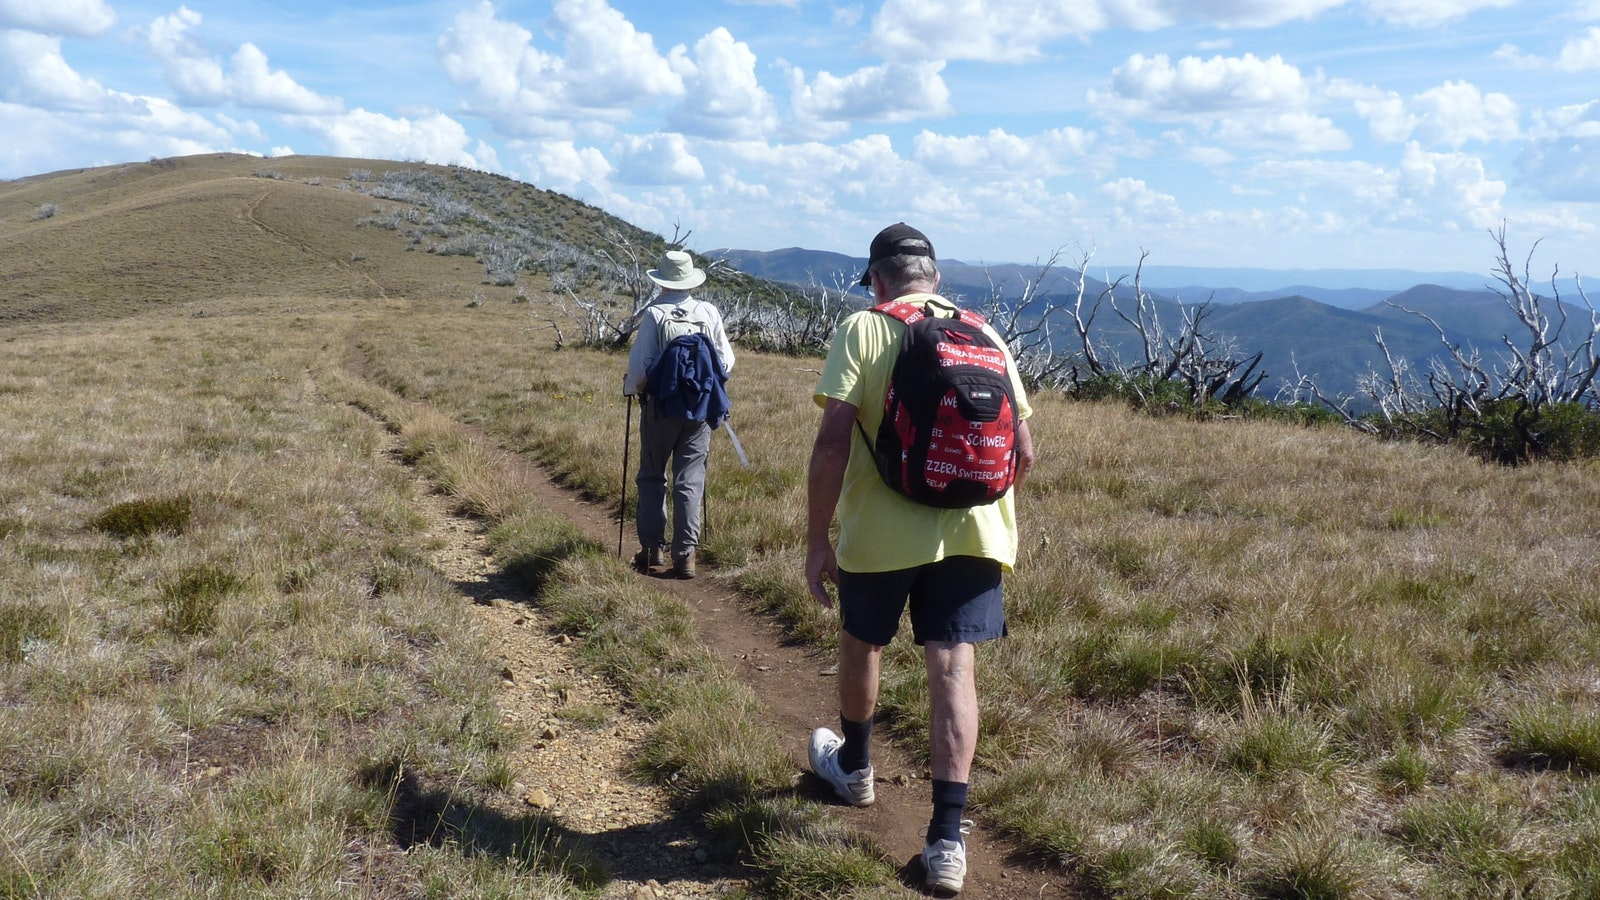 Walkers on Razorback Track in small group walking tour